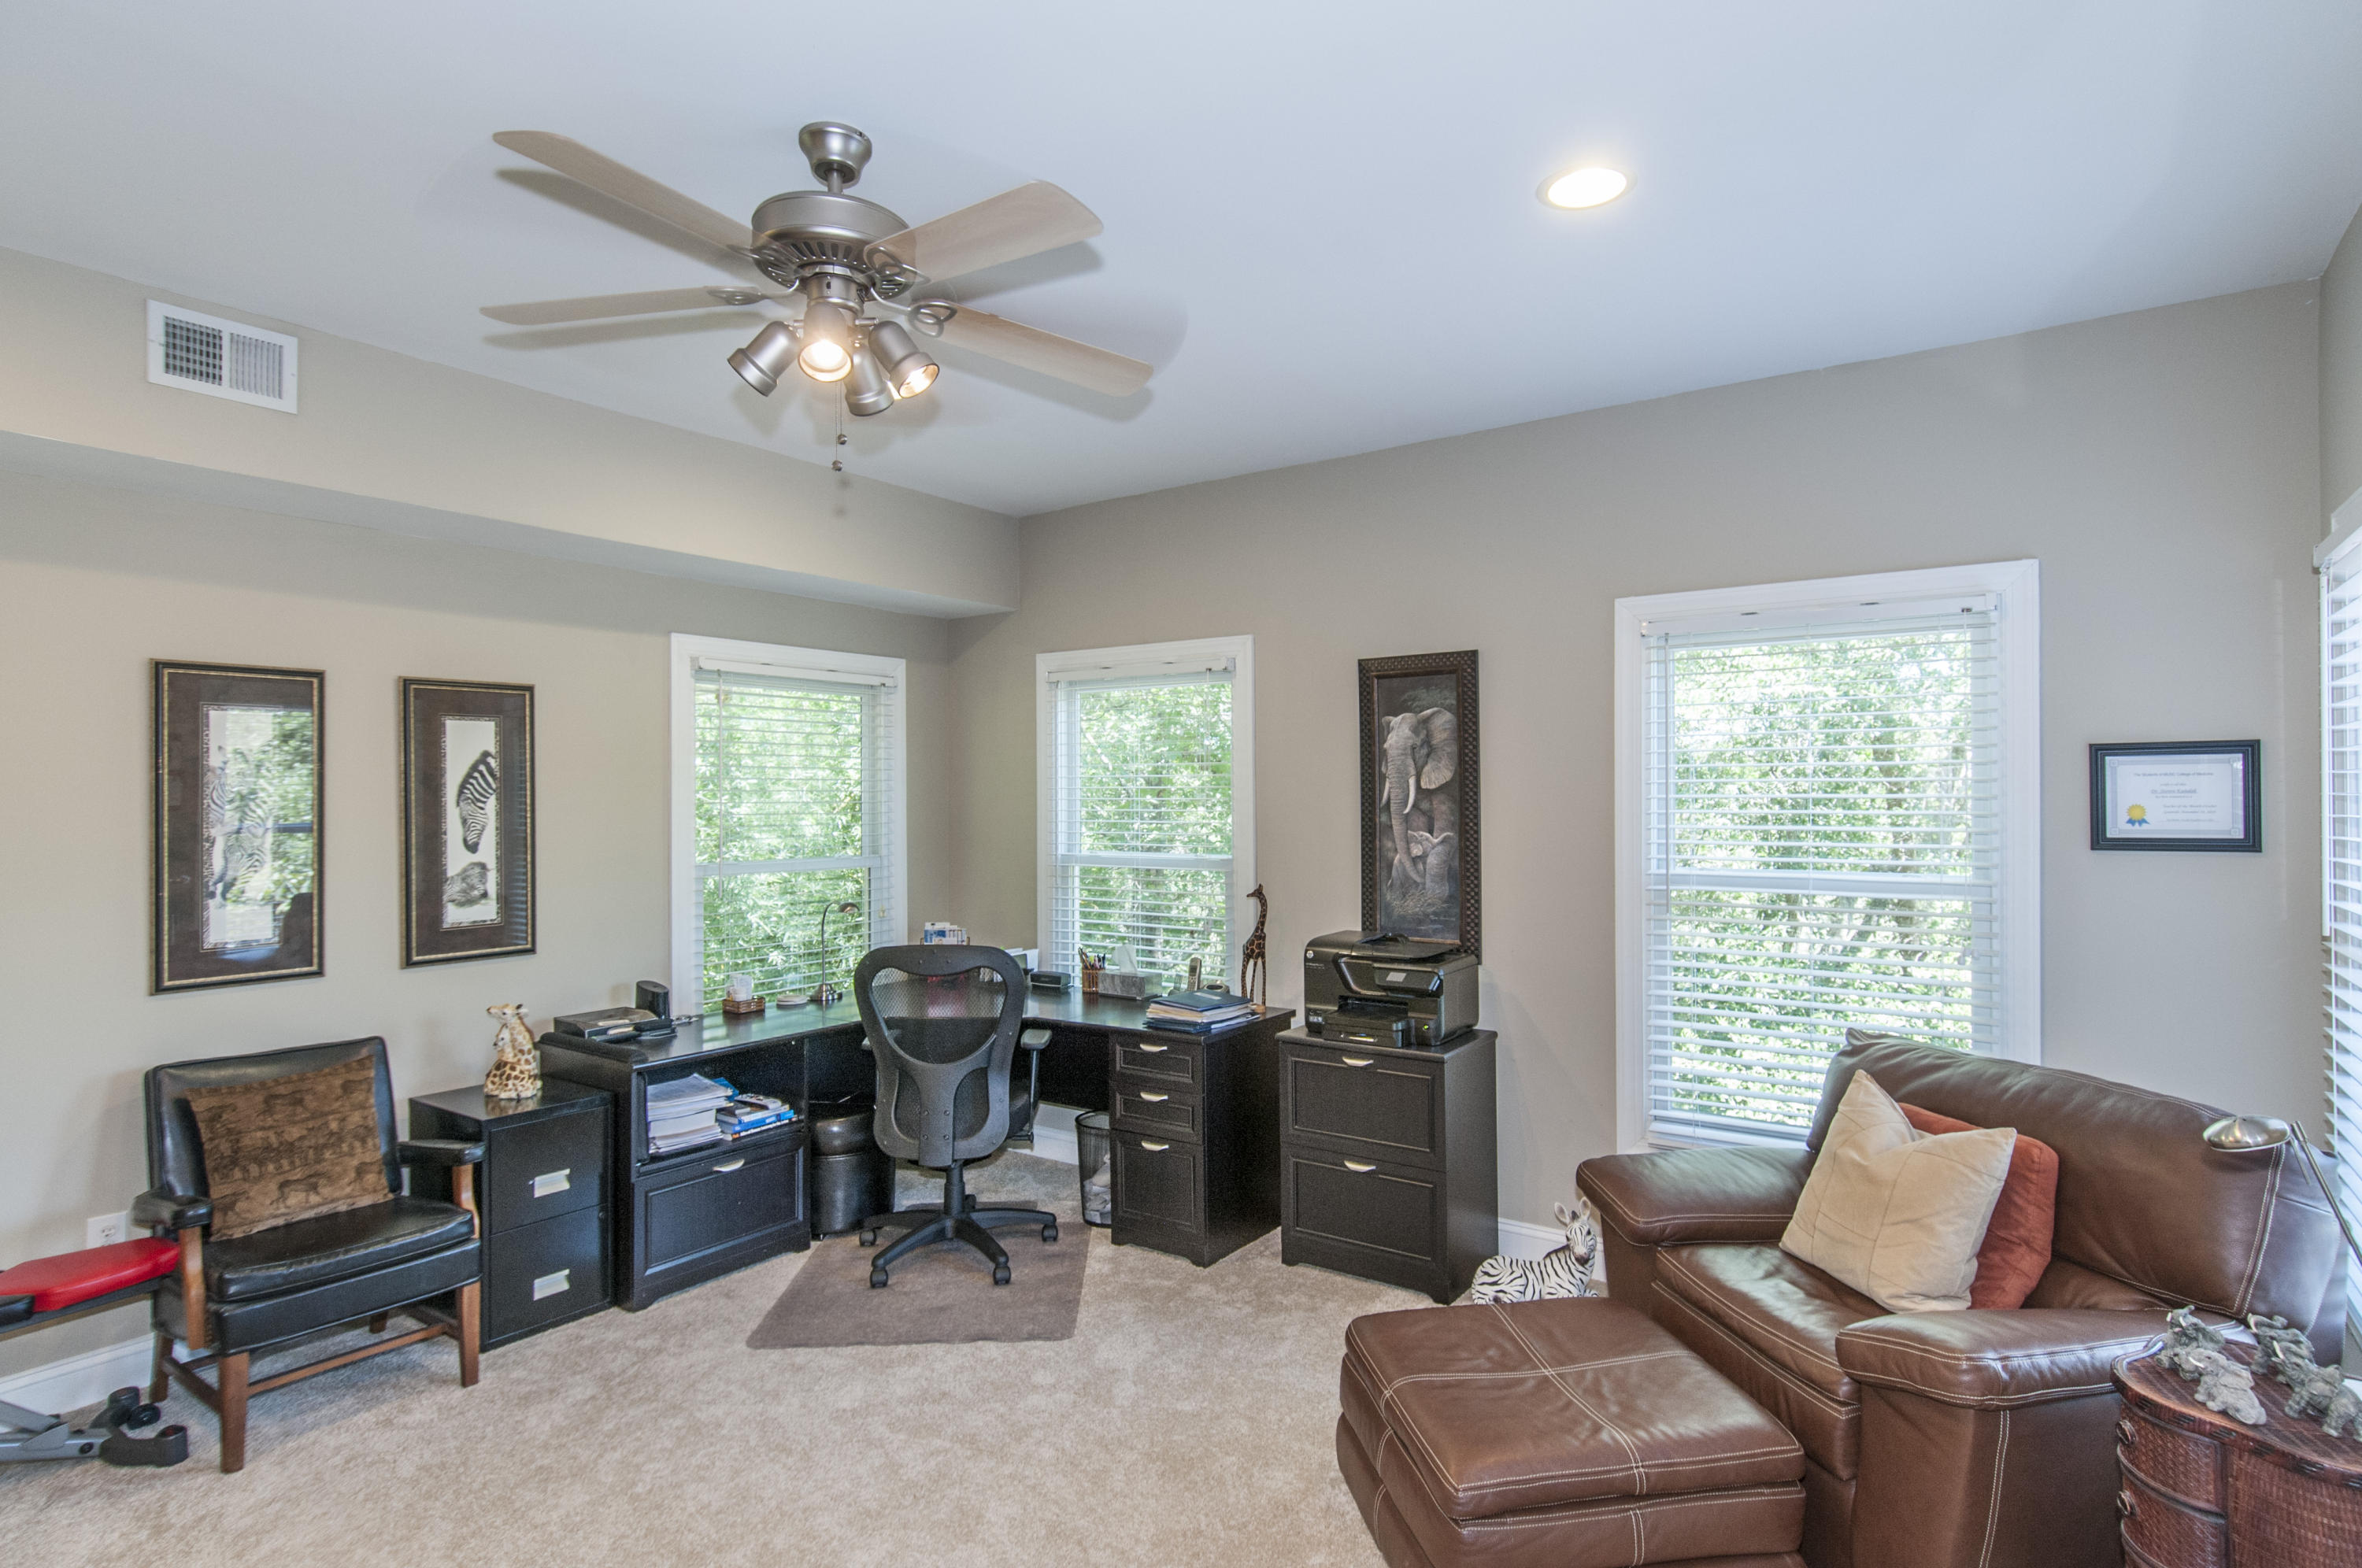 The Marshes at Rushland Landing Homes For Sale - 3022 Rushland Mews, Johns Island, SC - 13